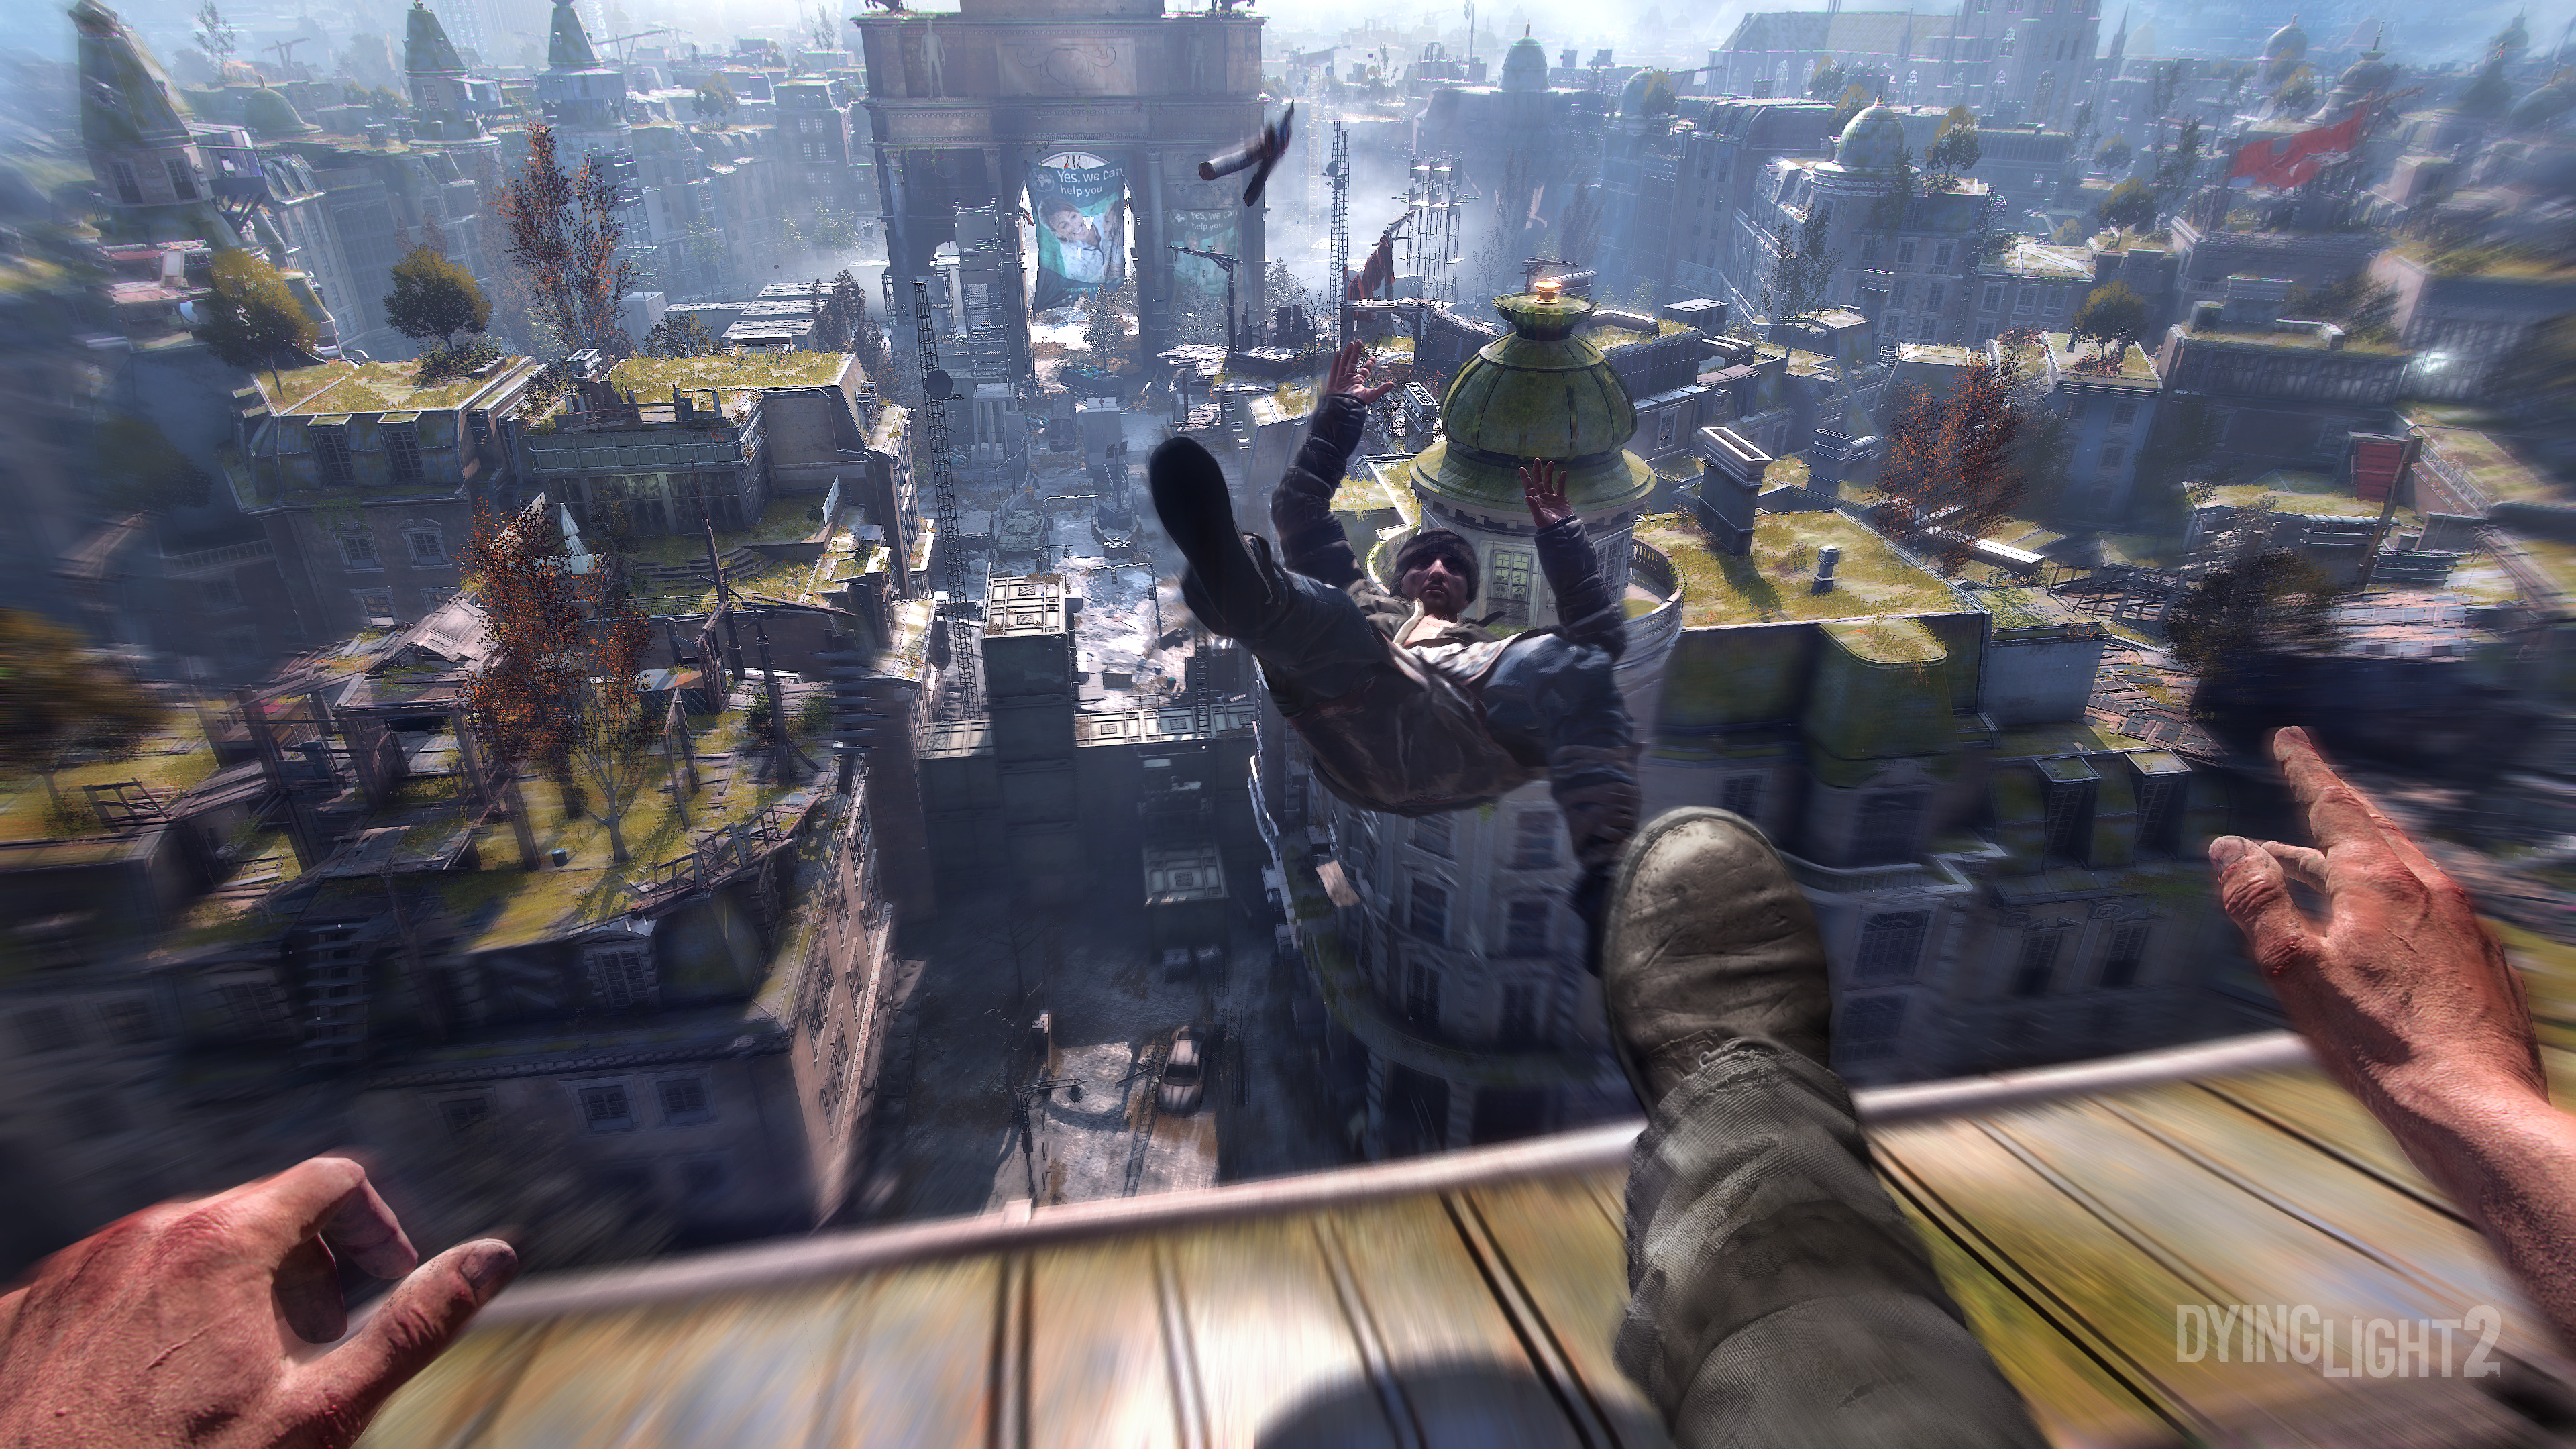 42639913090 db172e99bf o - Dying Light 2 & Dying Light Bad Blood: Mehr Zombie-Spaß im Multiplayer